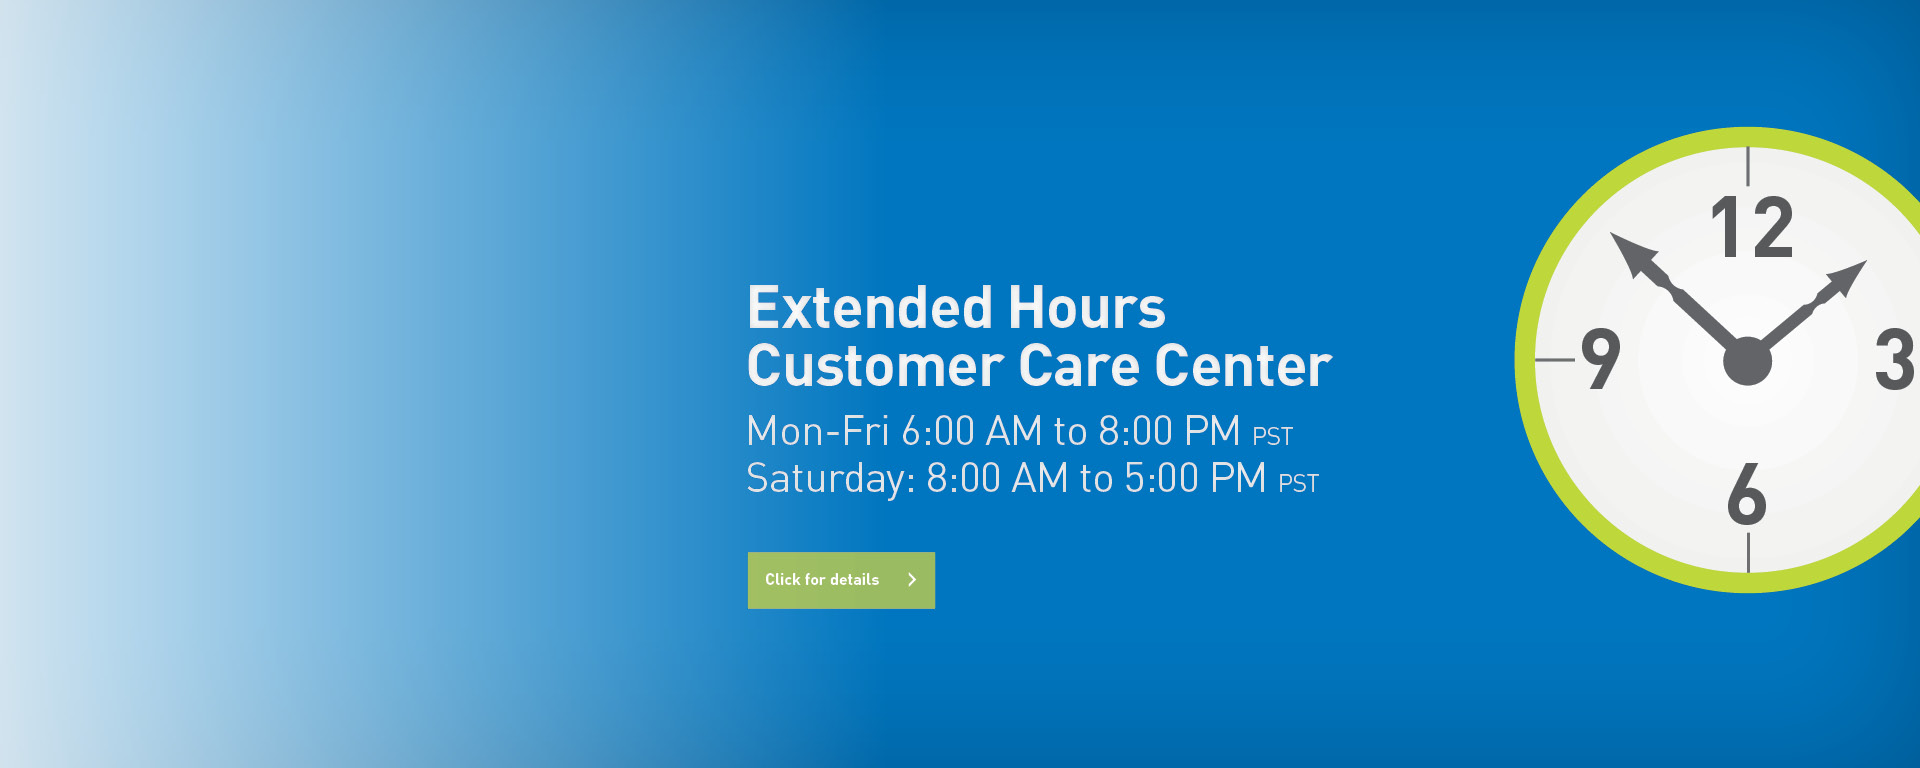 ExpandedCustomerCareHours-1